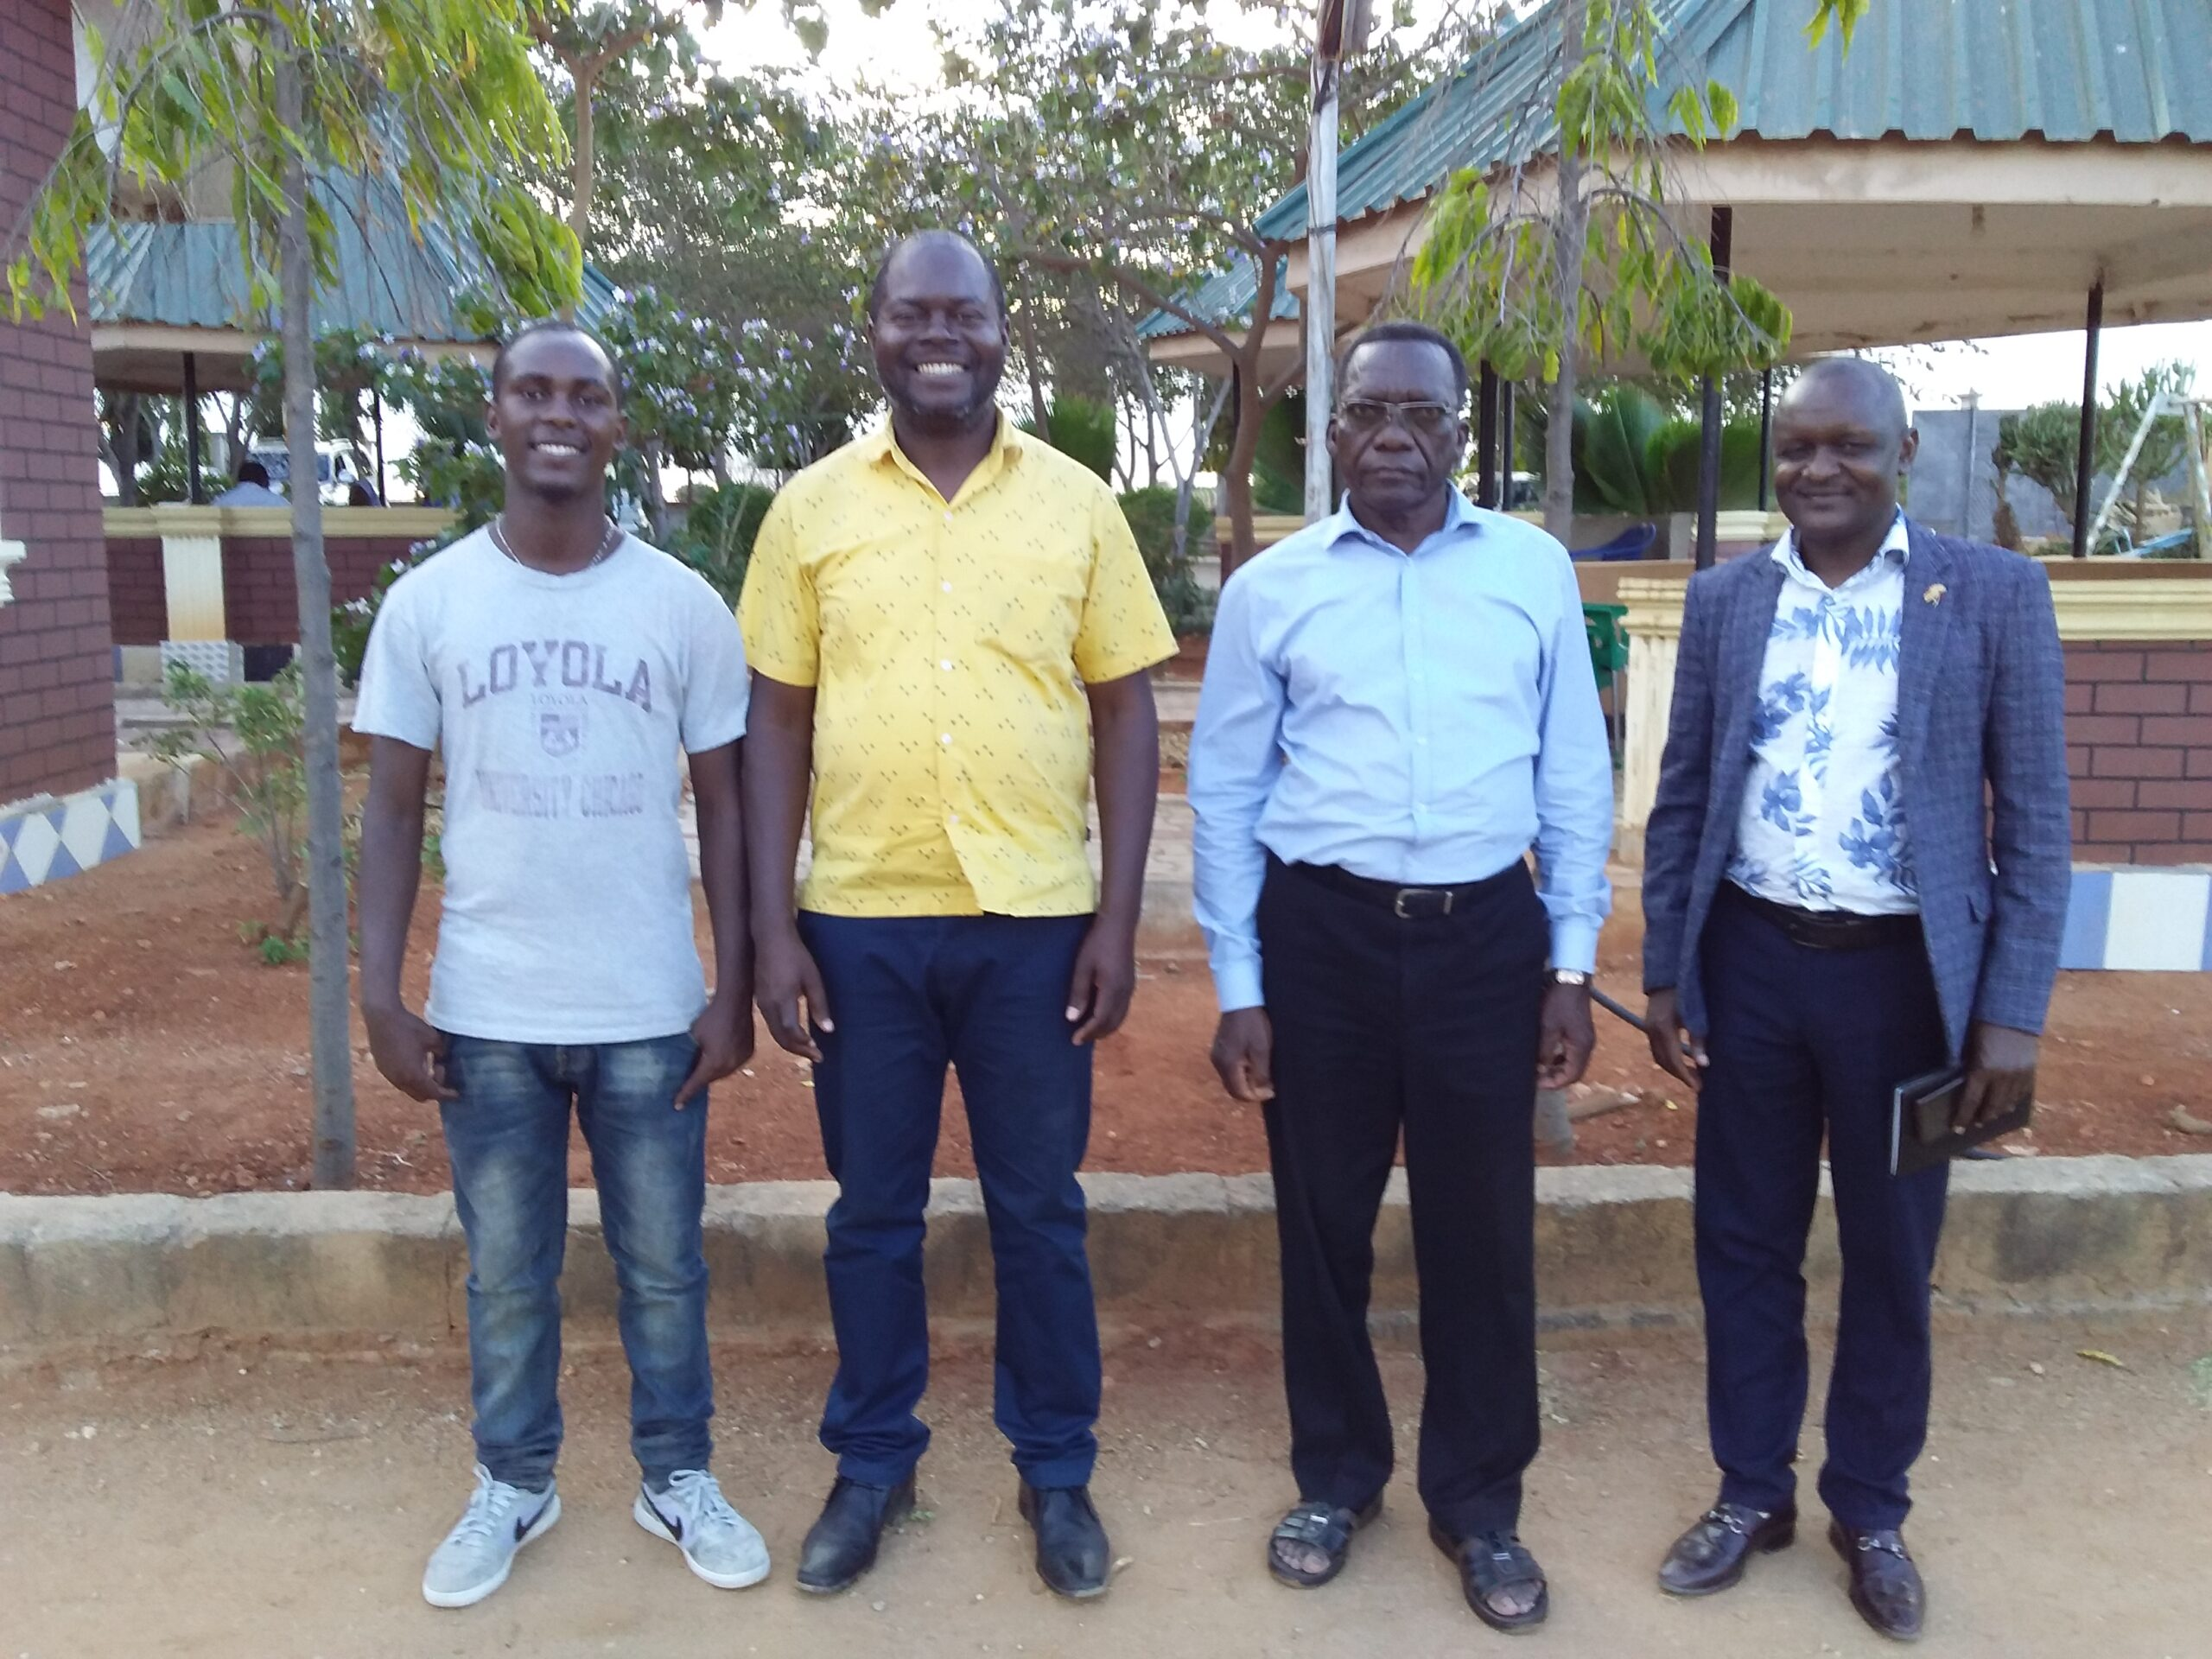 tzCNA CEO had an opportunity to visit the Former Prime Minister Hon. Mizengo Pinda